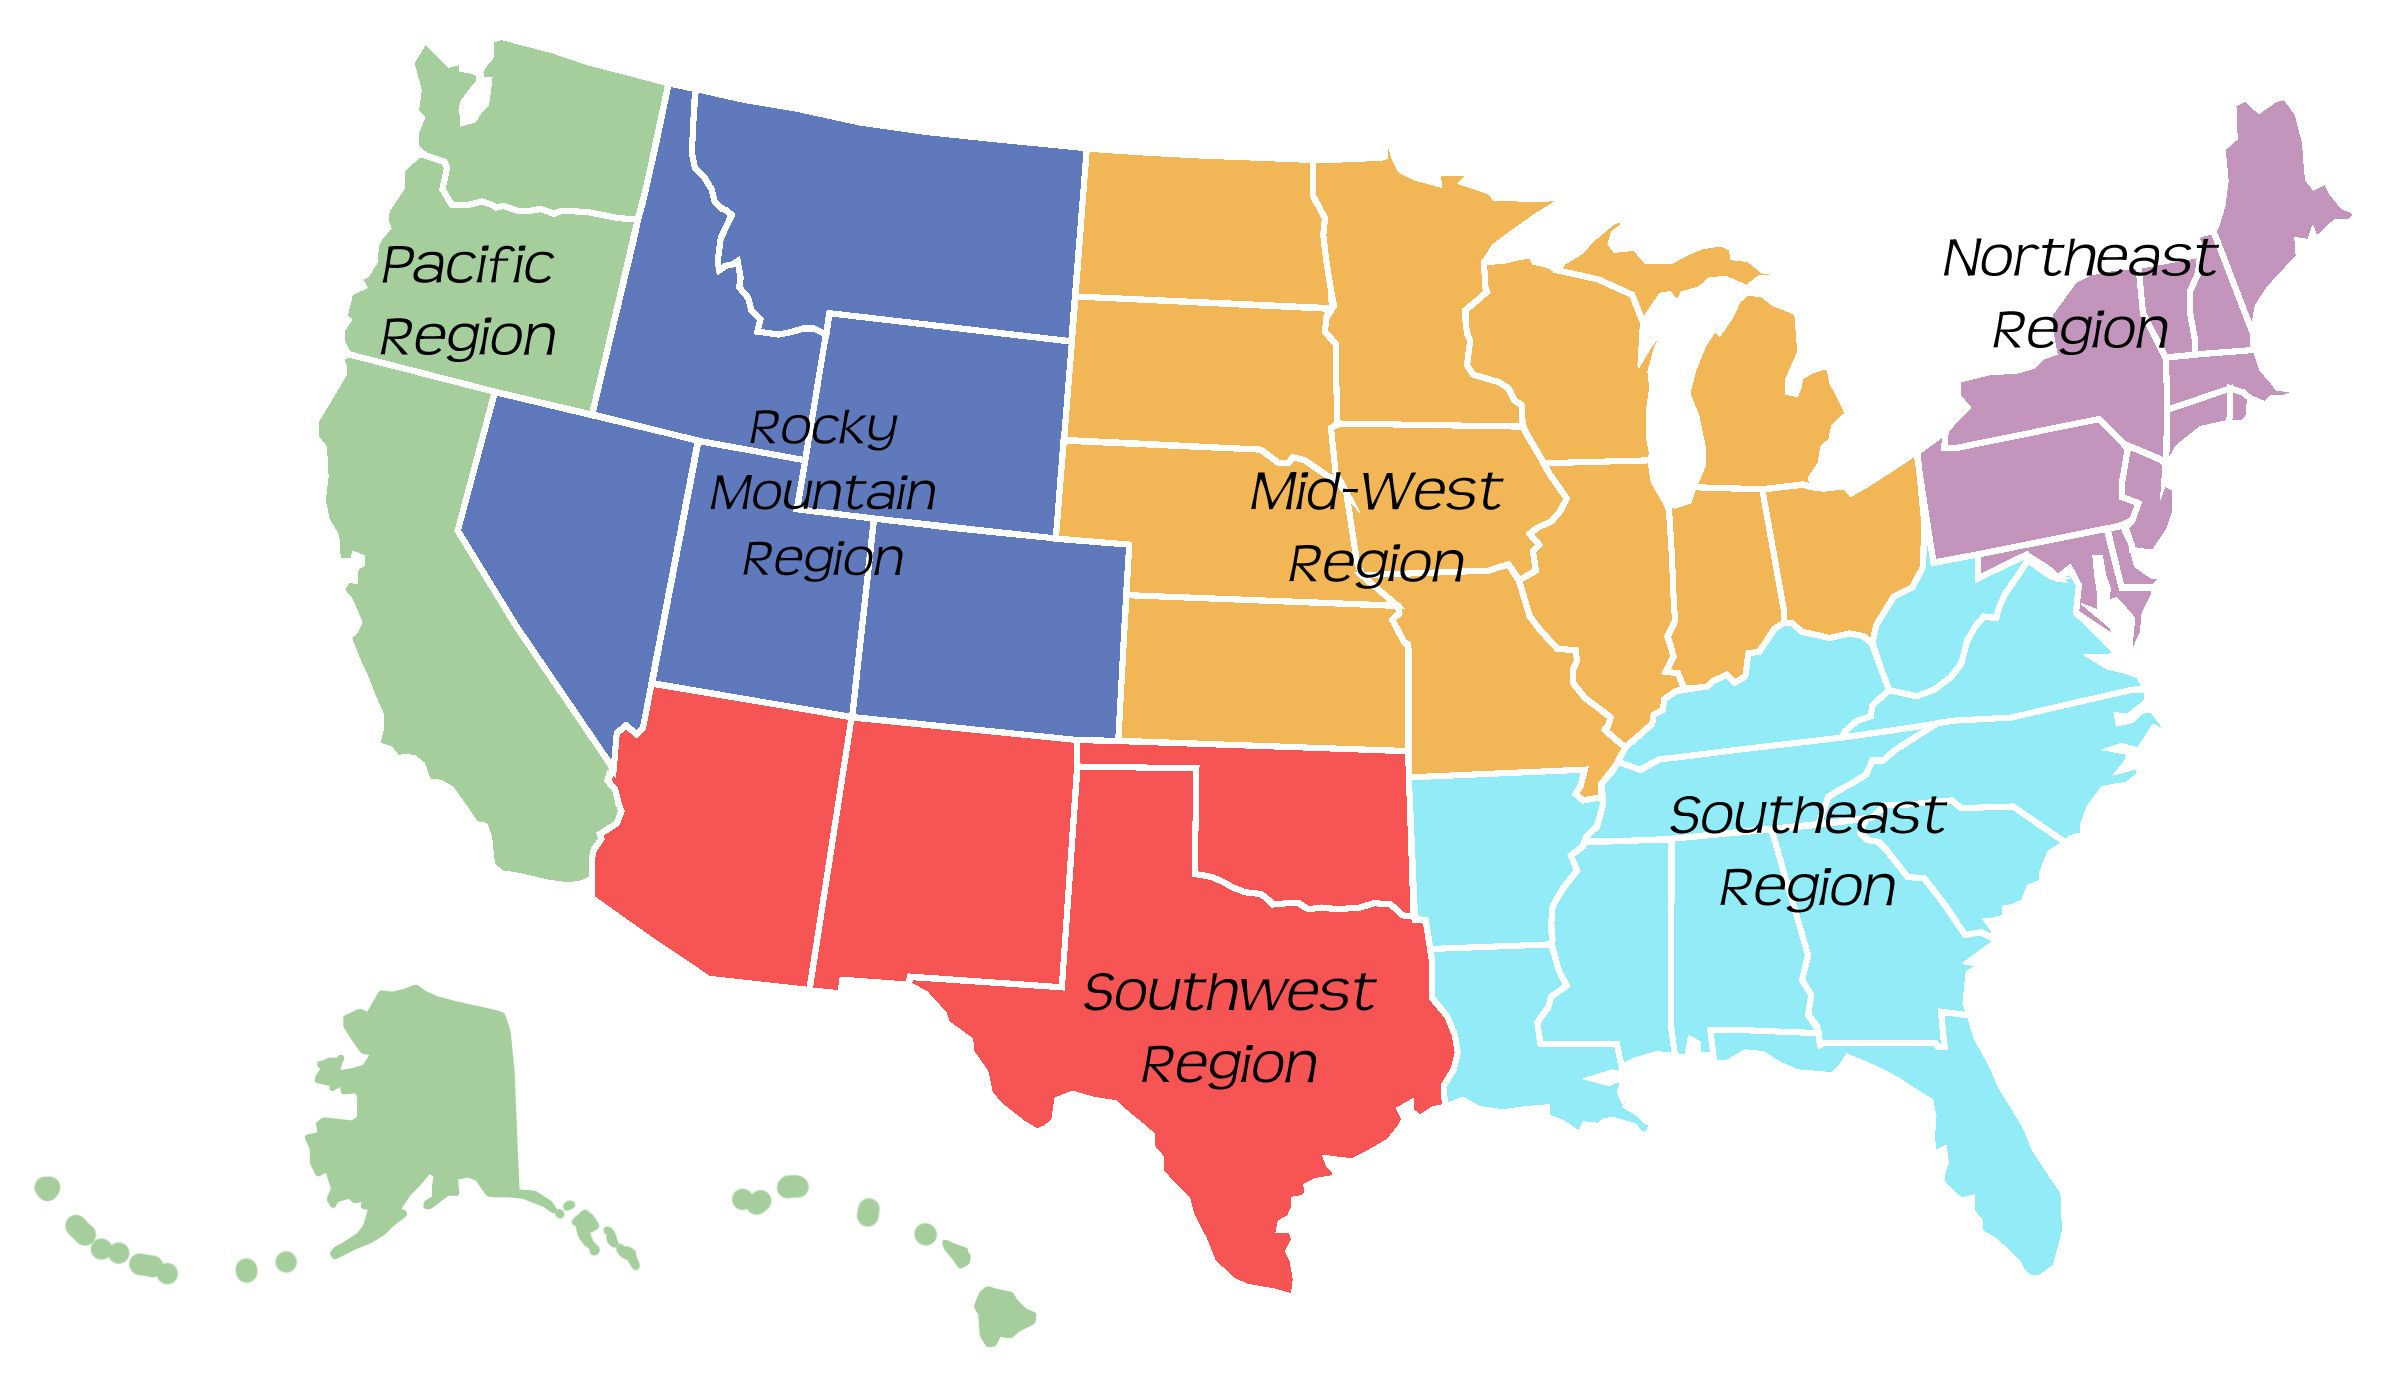 Political Map Of Southeast Us Image result for regions of the united states | Usa map, Southeast